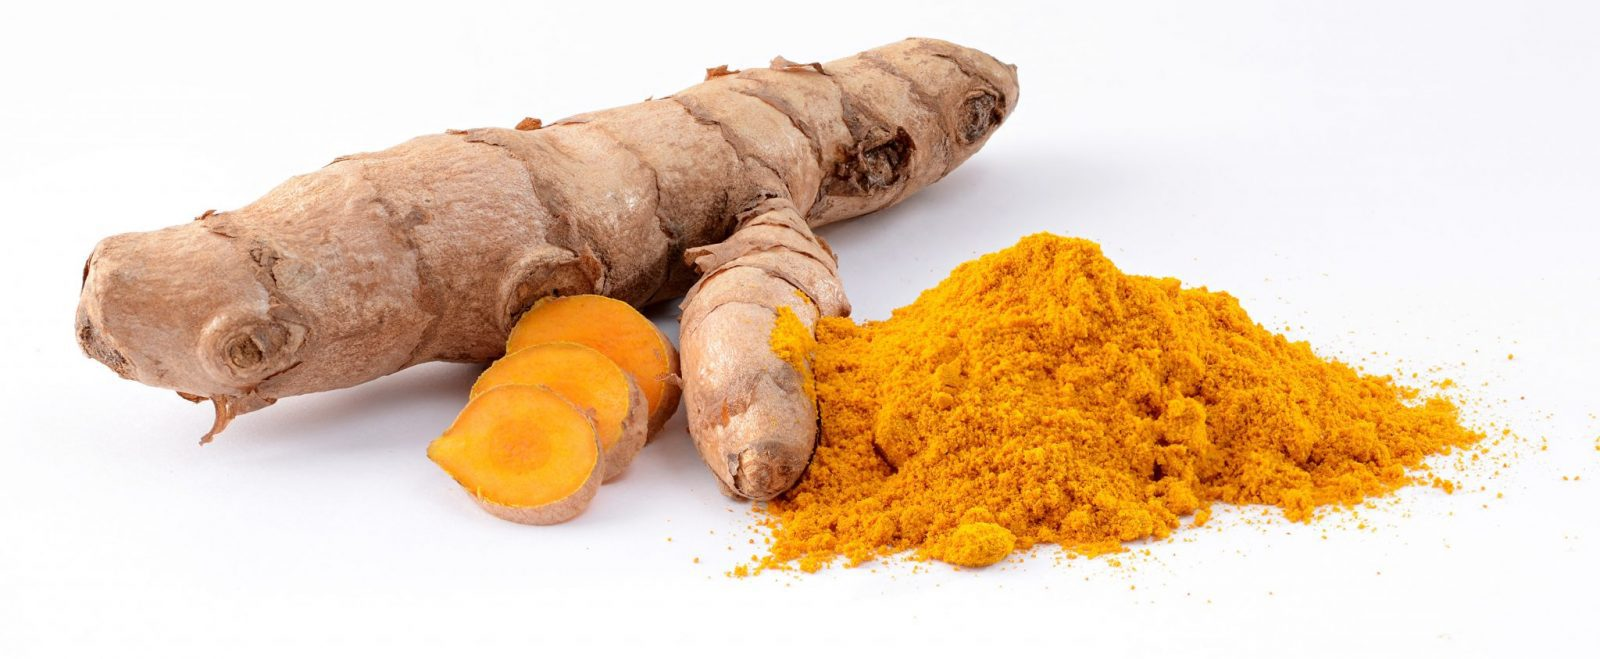 Health Benefits of Turmeric. Turmeric root. Turmeric powder.